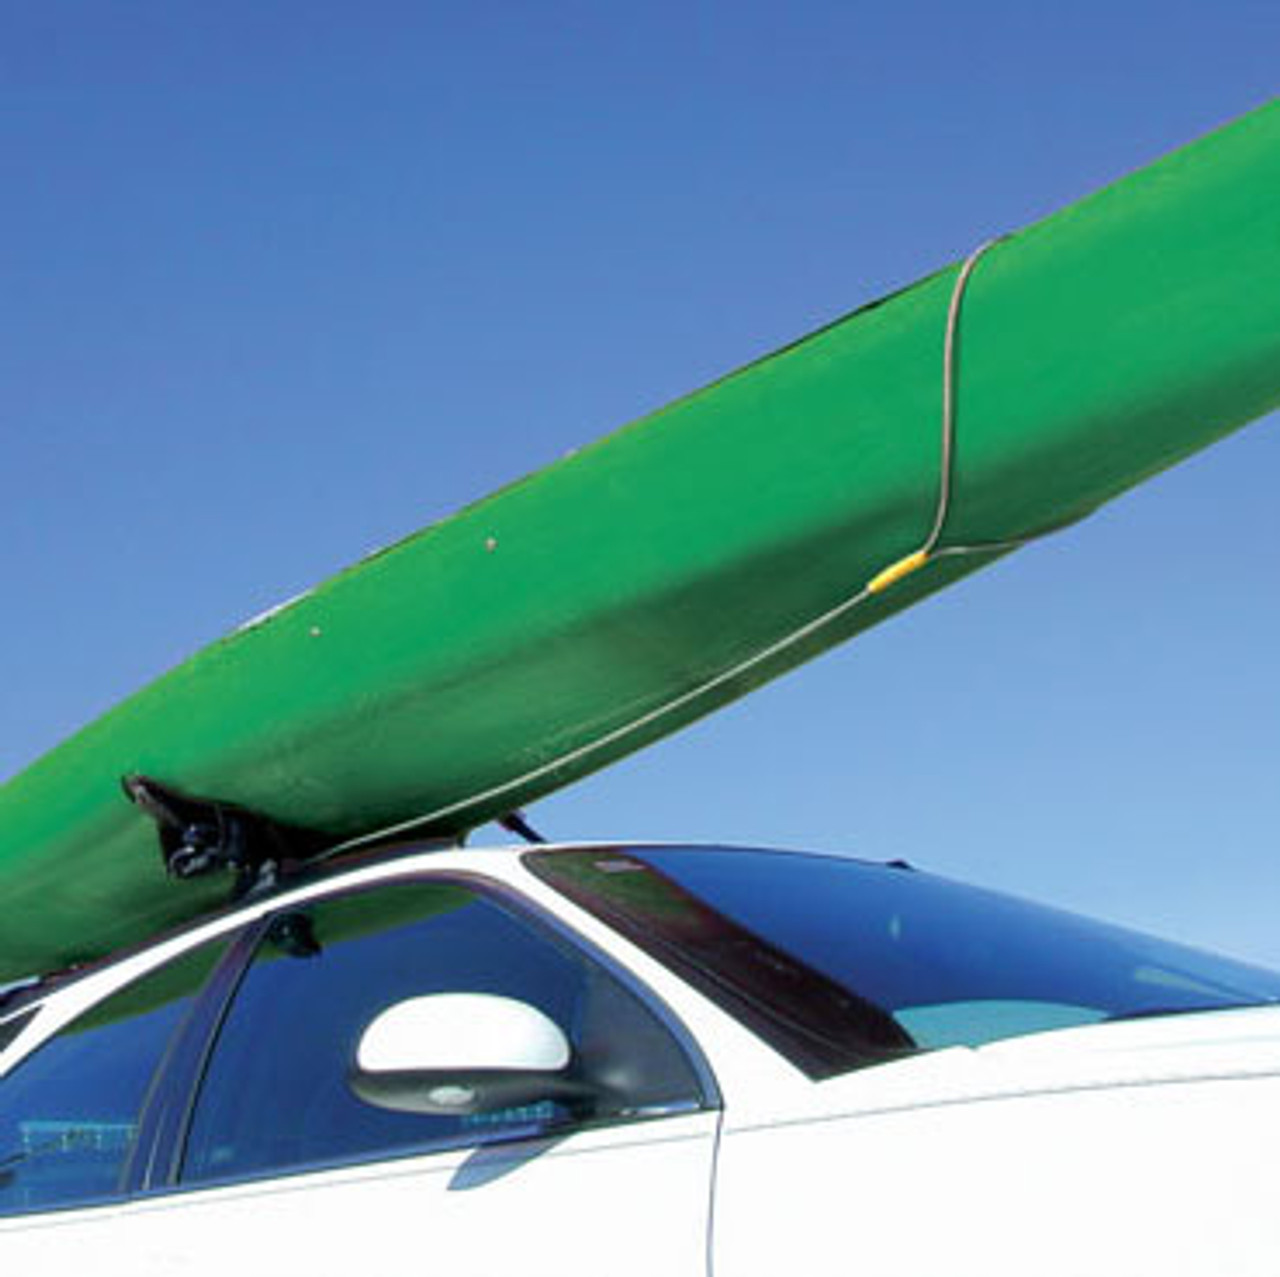 security system for locking kayaks